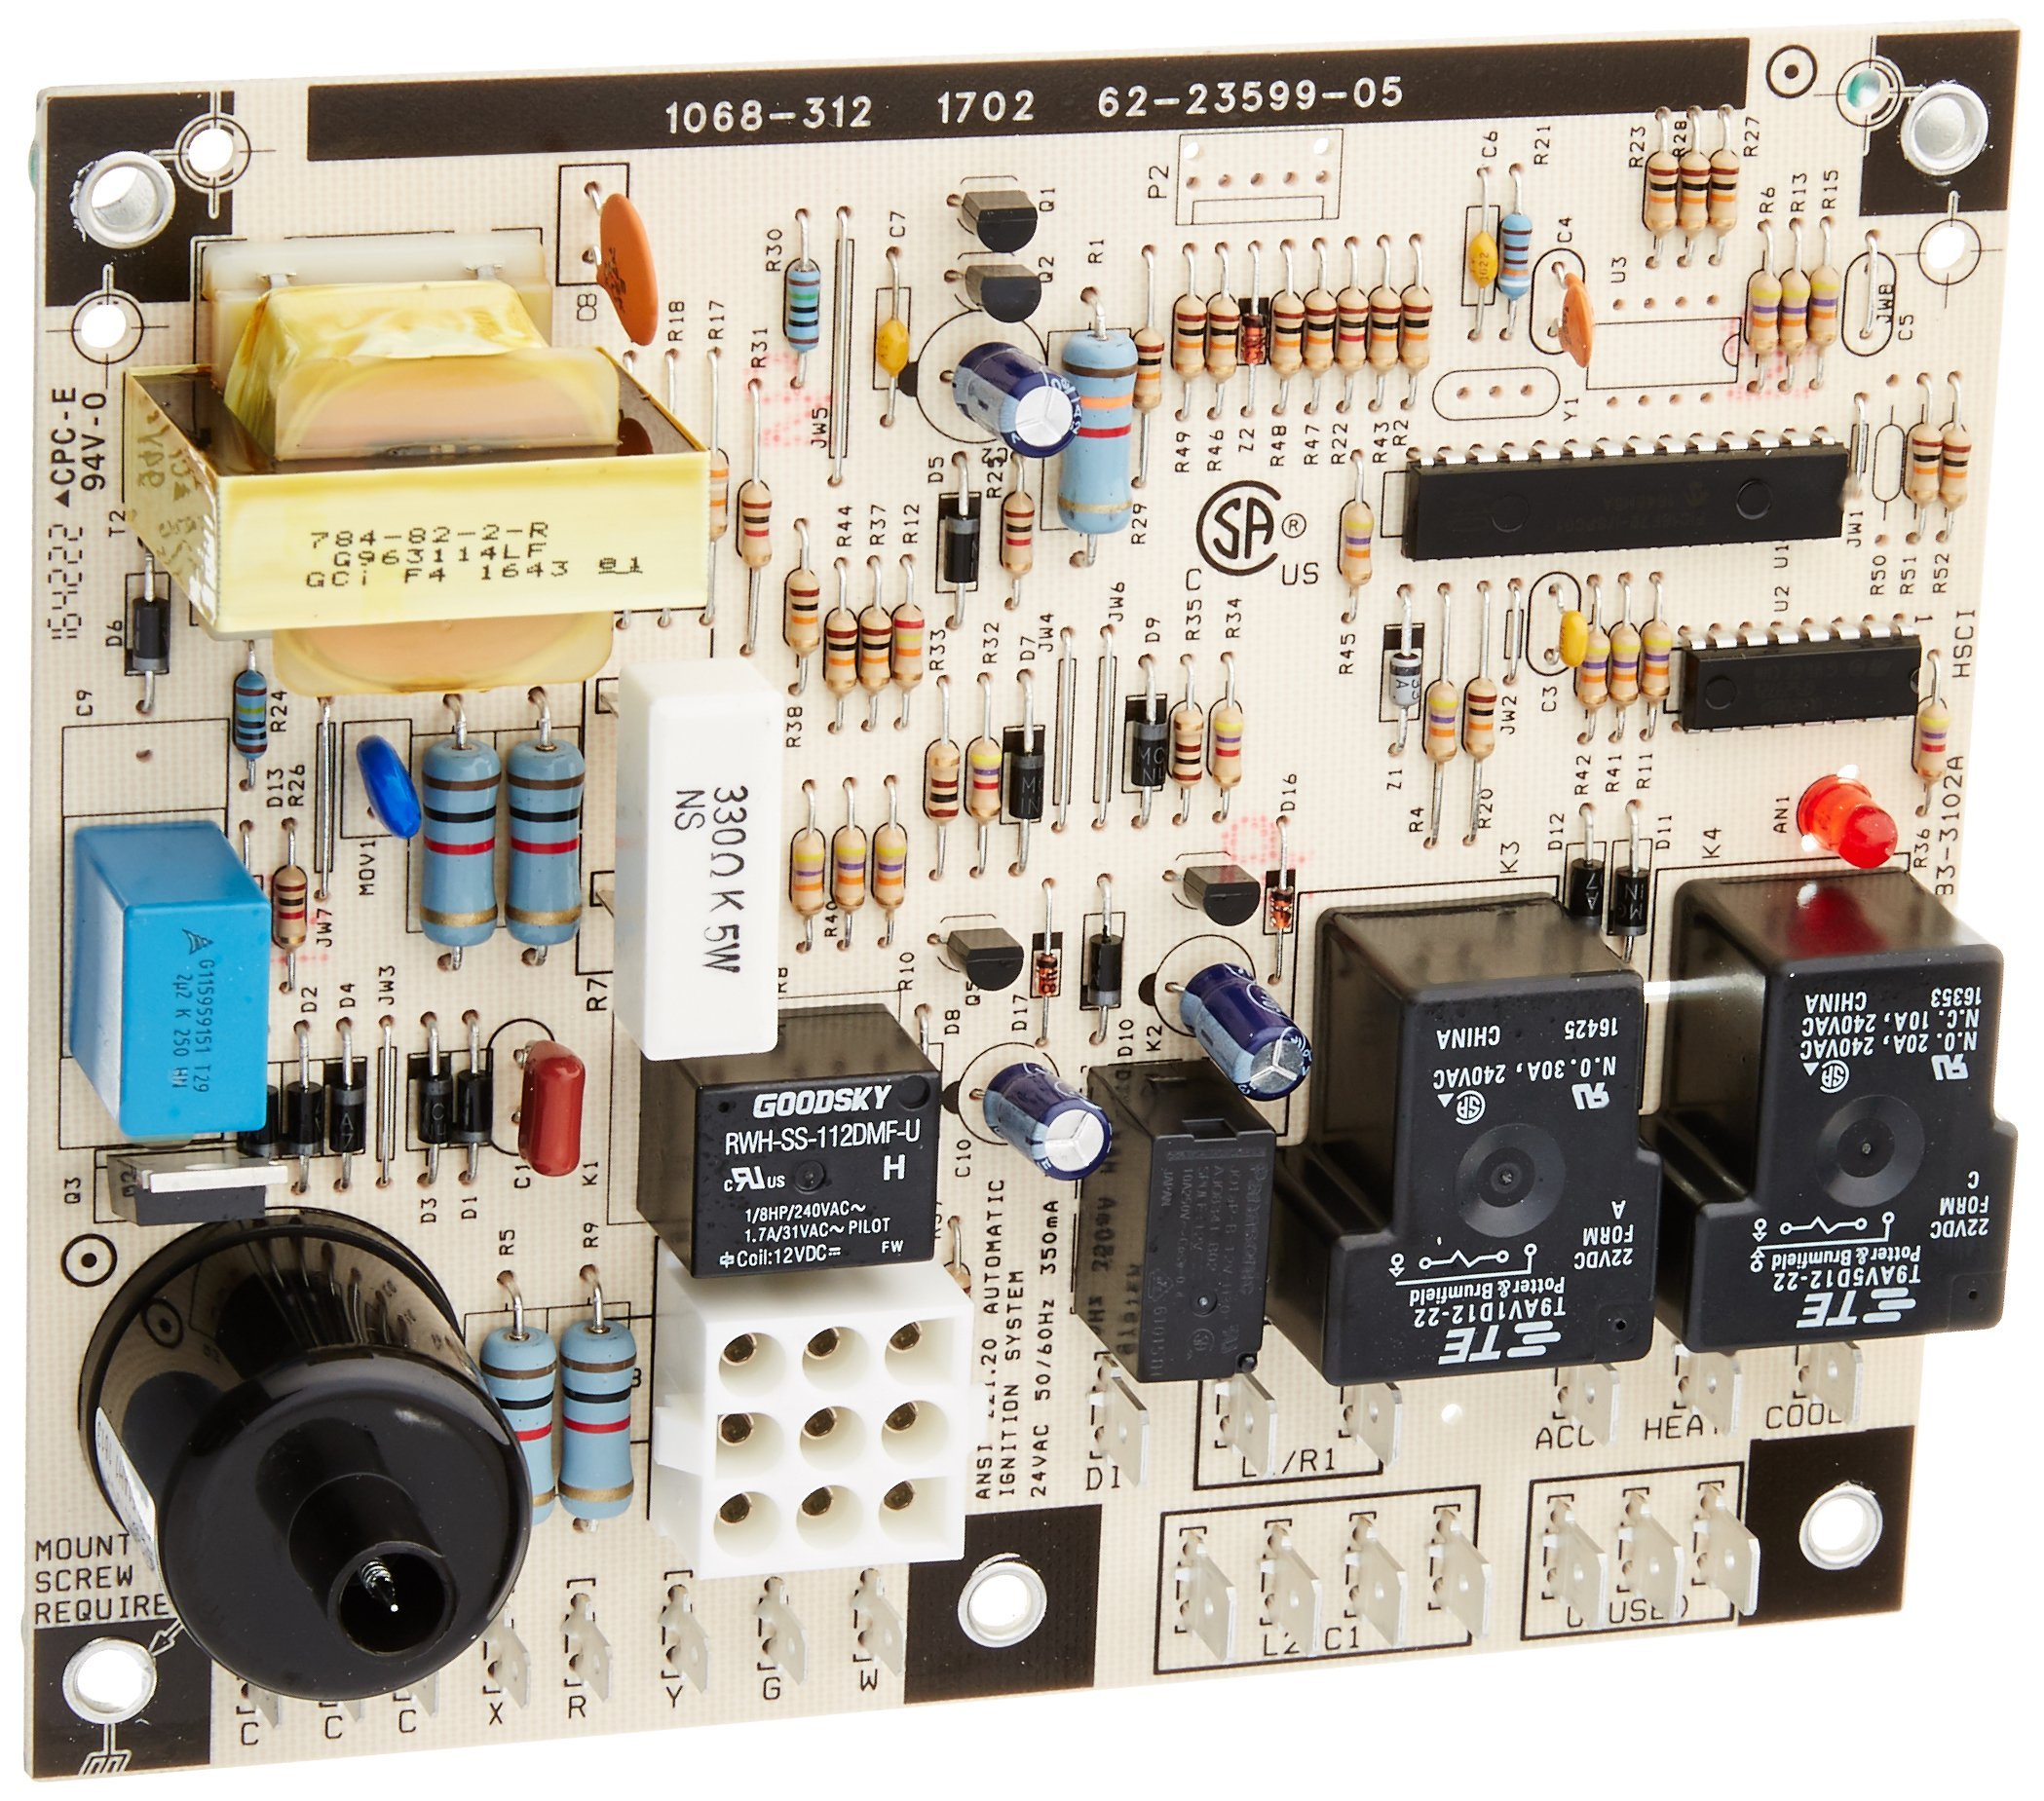 Protech 62-23599-05 Integrated Furnace Control Board